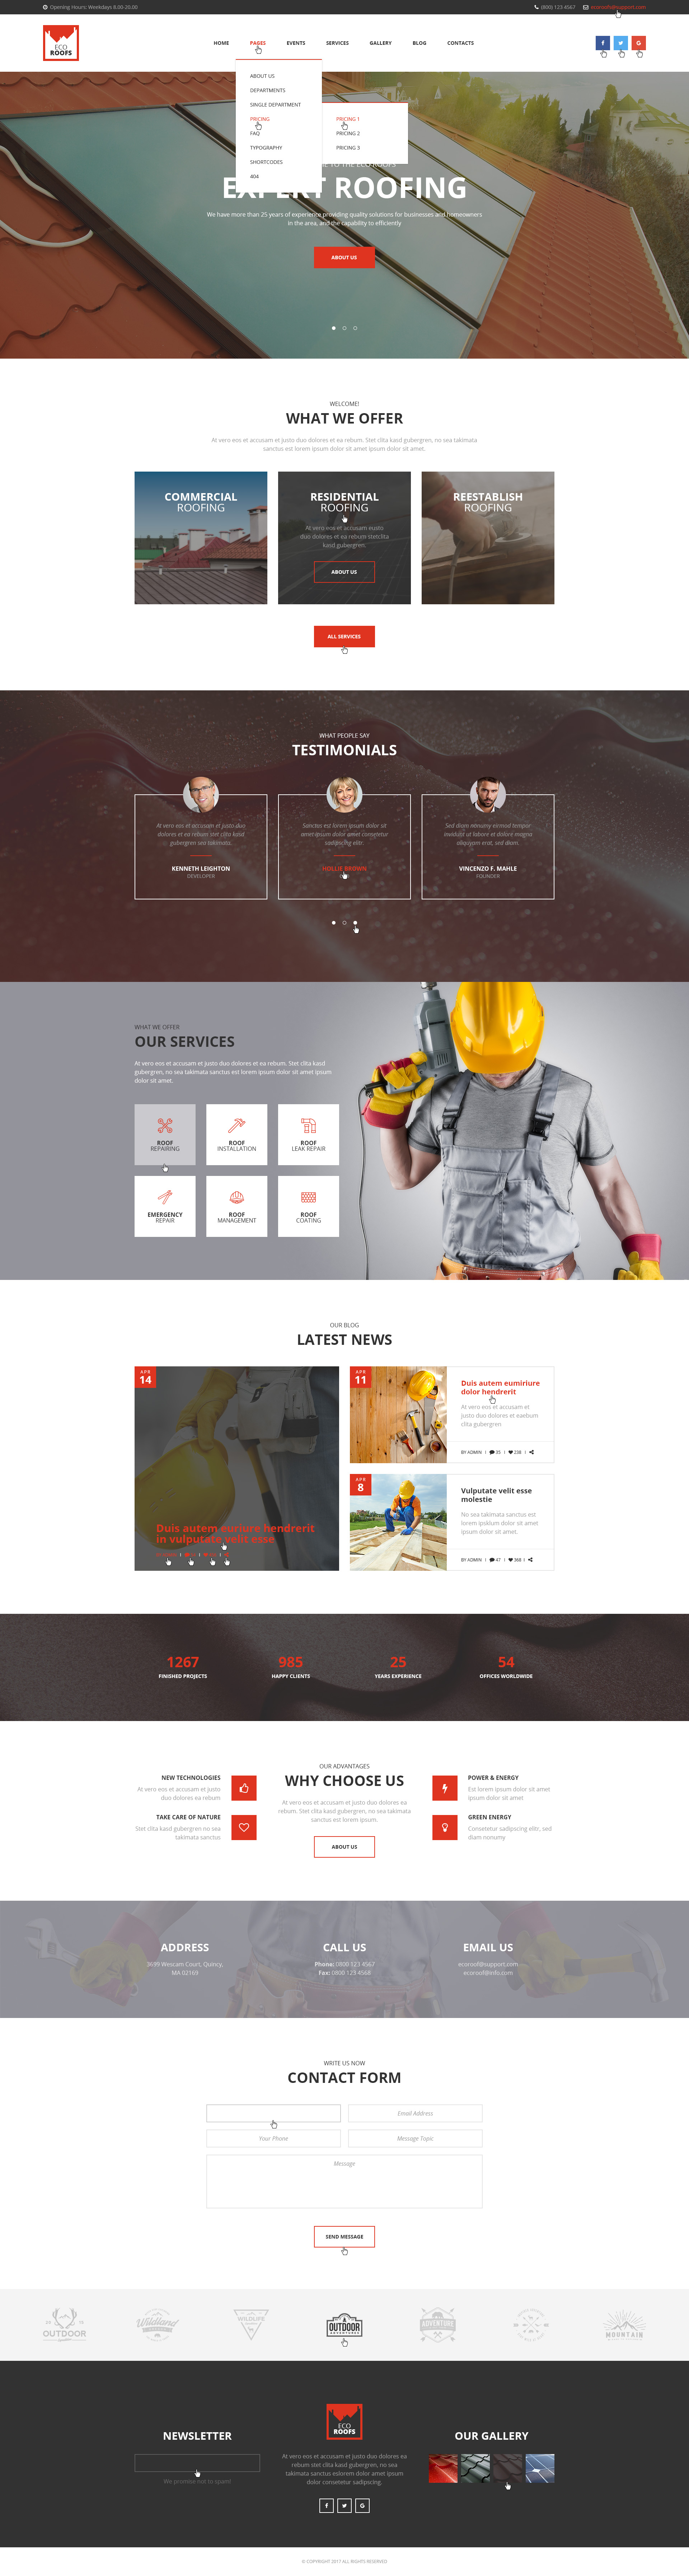 Eco Roofs - Roofing Renovation PSD Template by mwtemplates | ThemeForest